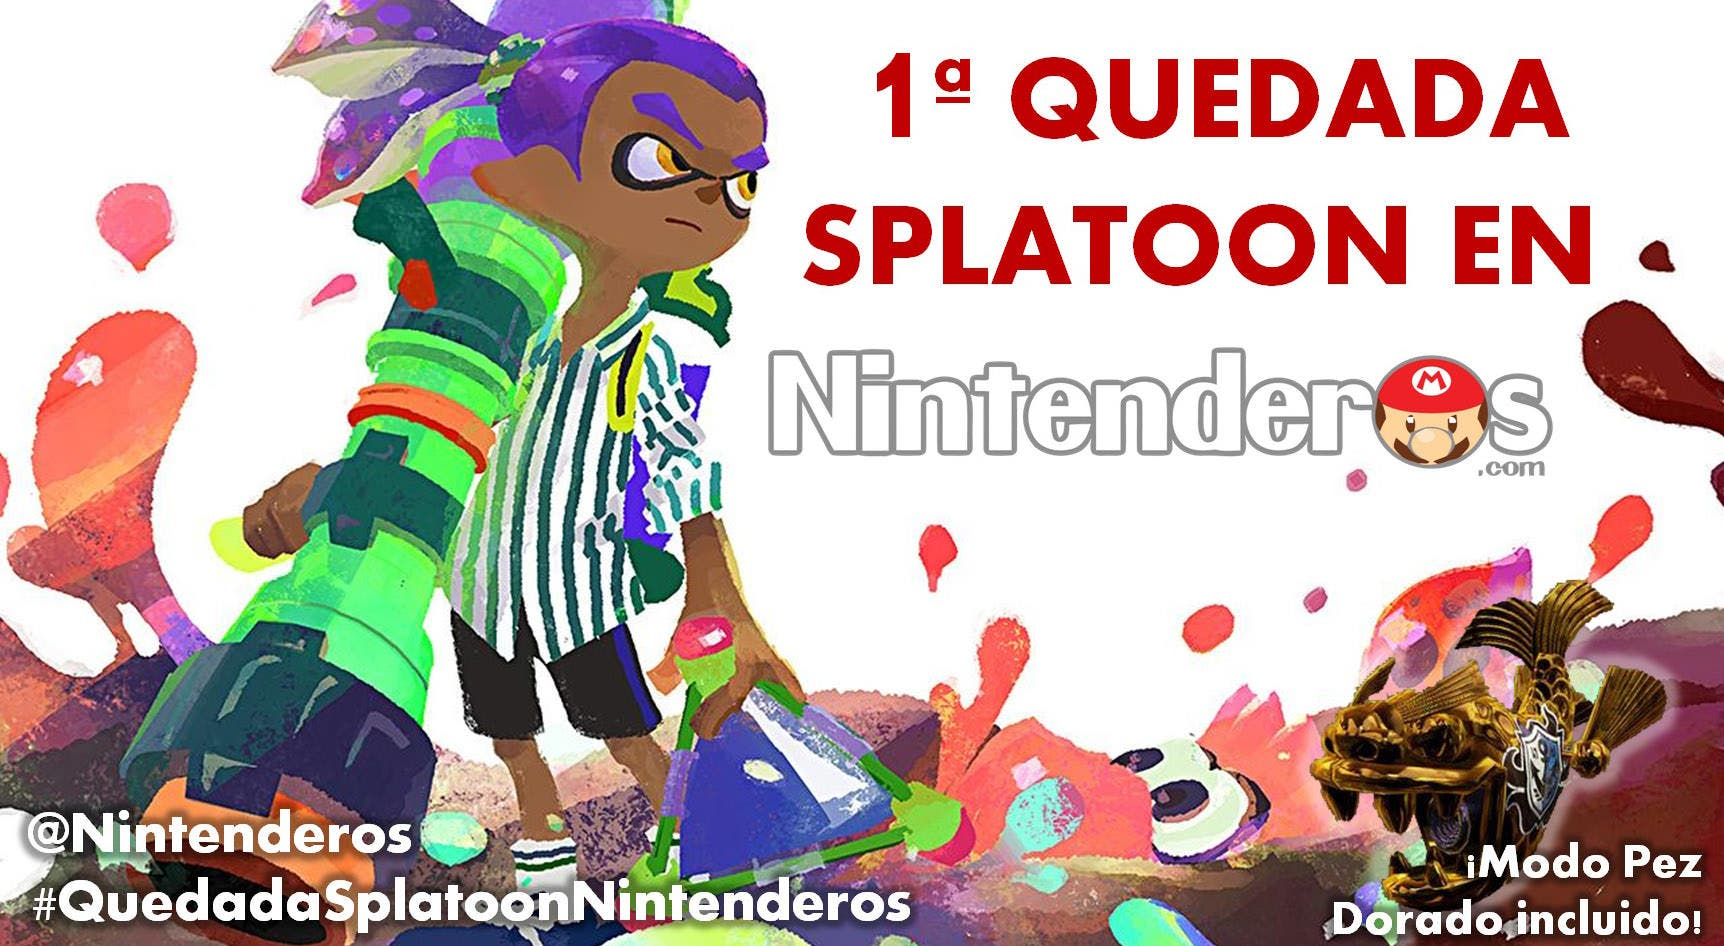 quedada splatoon